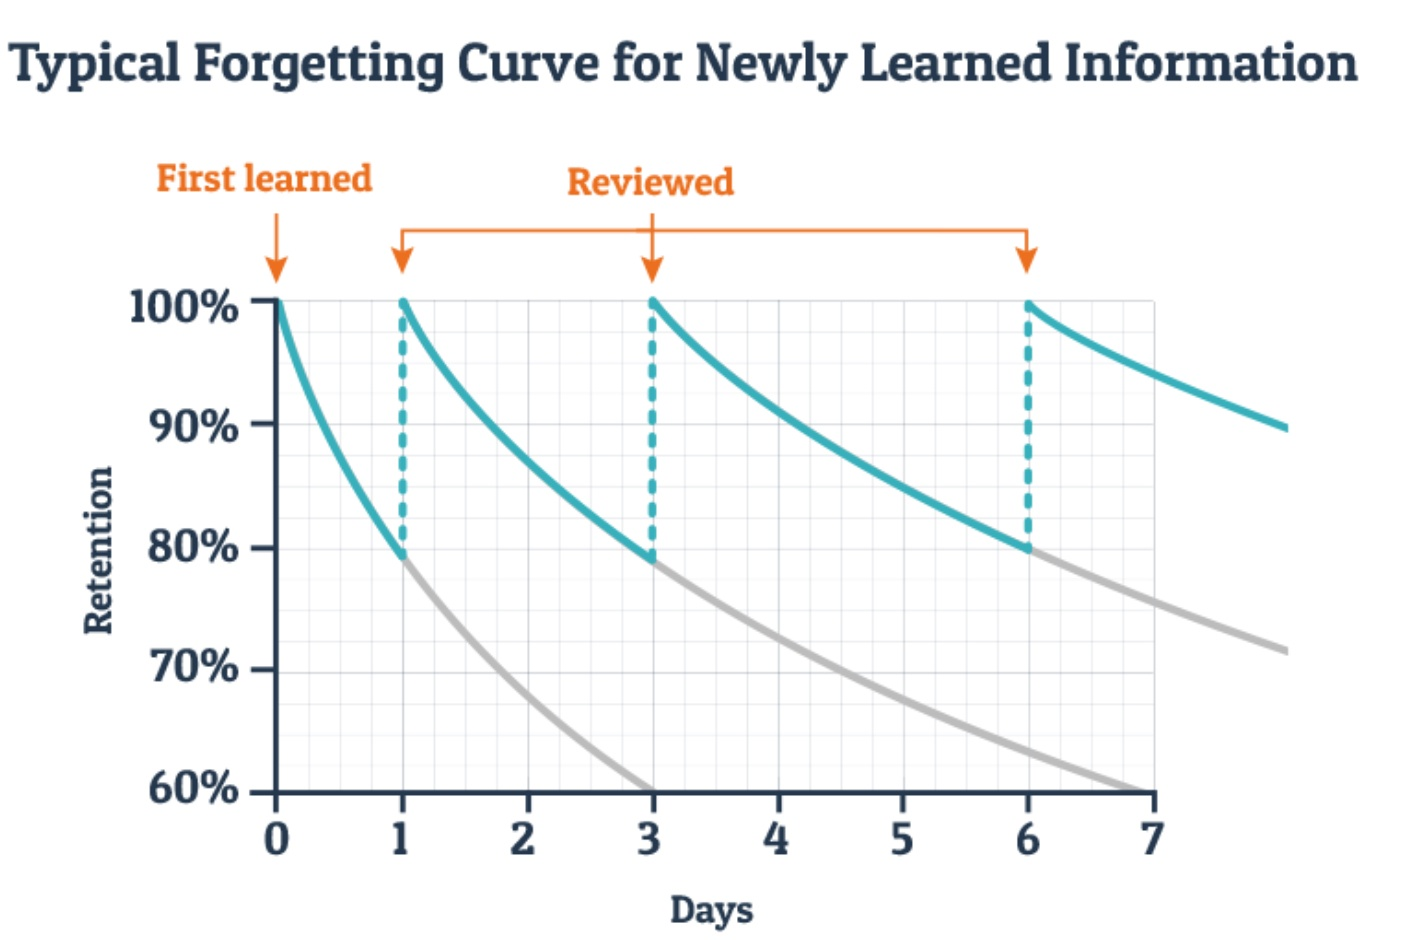 Forgetting curve after implementing Spaced Repetition